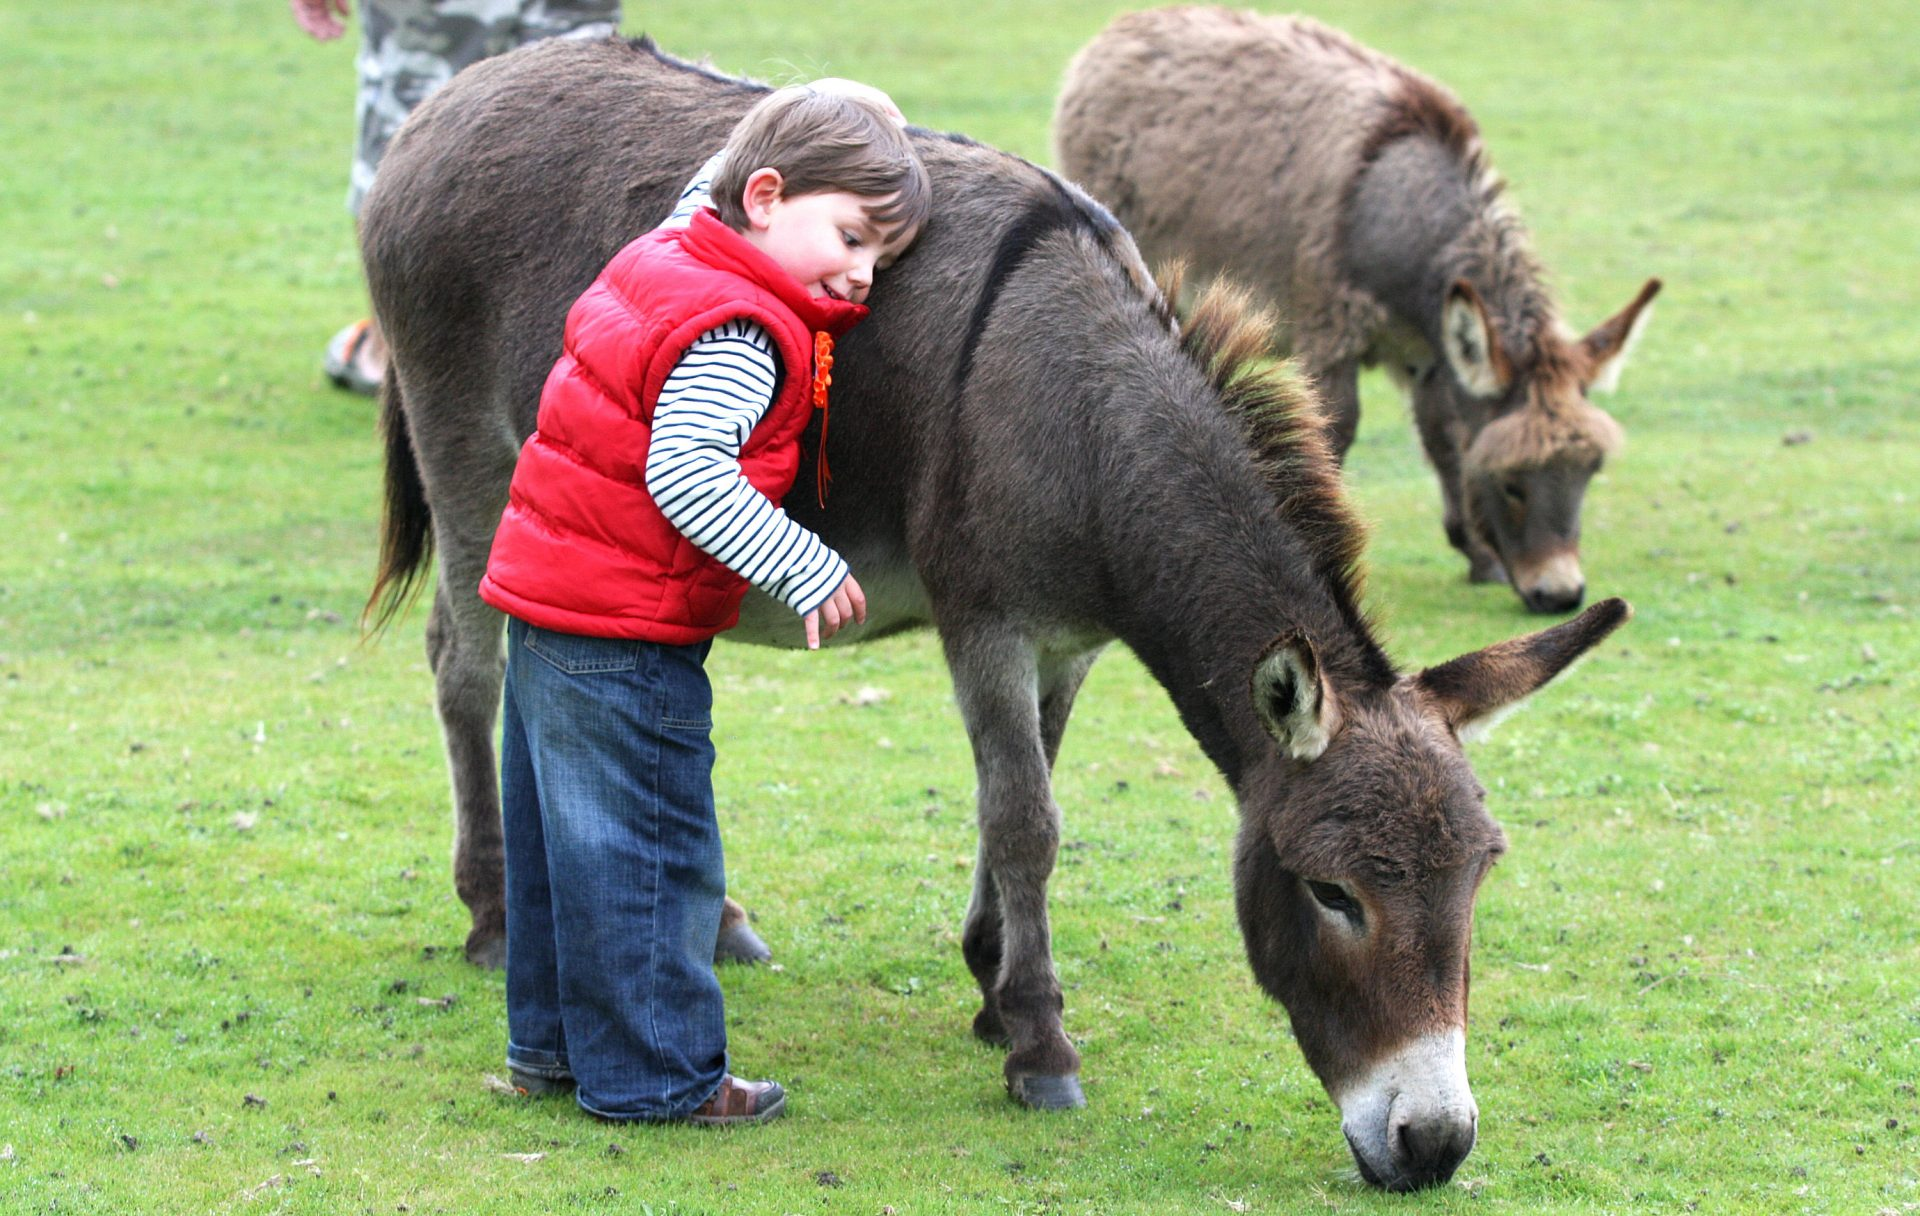 Miniature Pony Centre, Moretonhampstead. Open again now. Yippee !